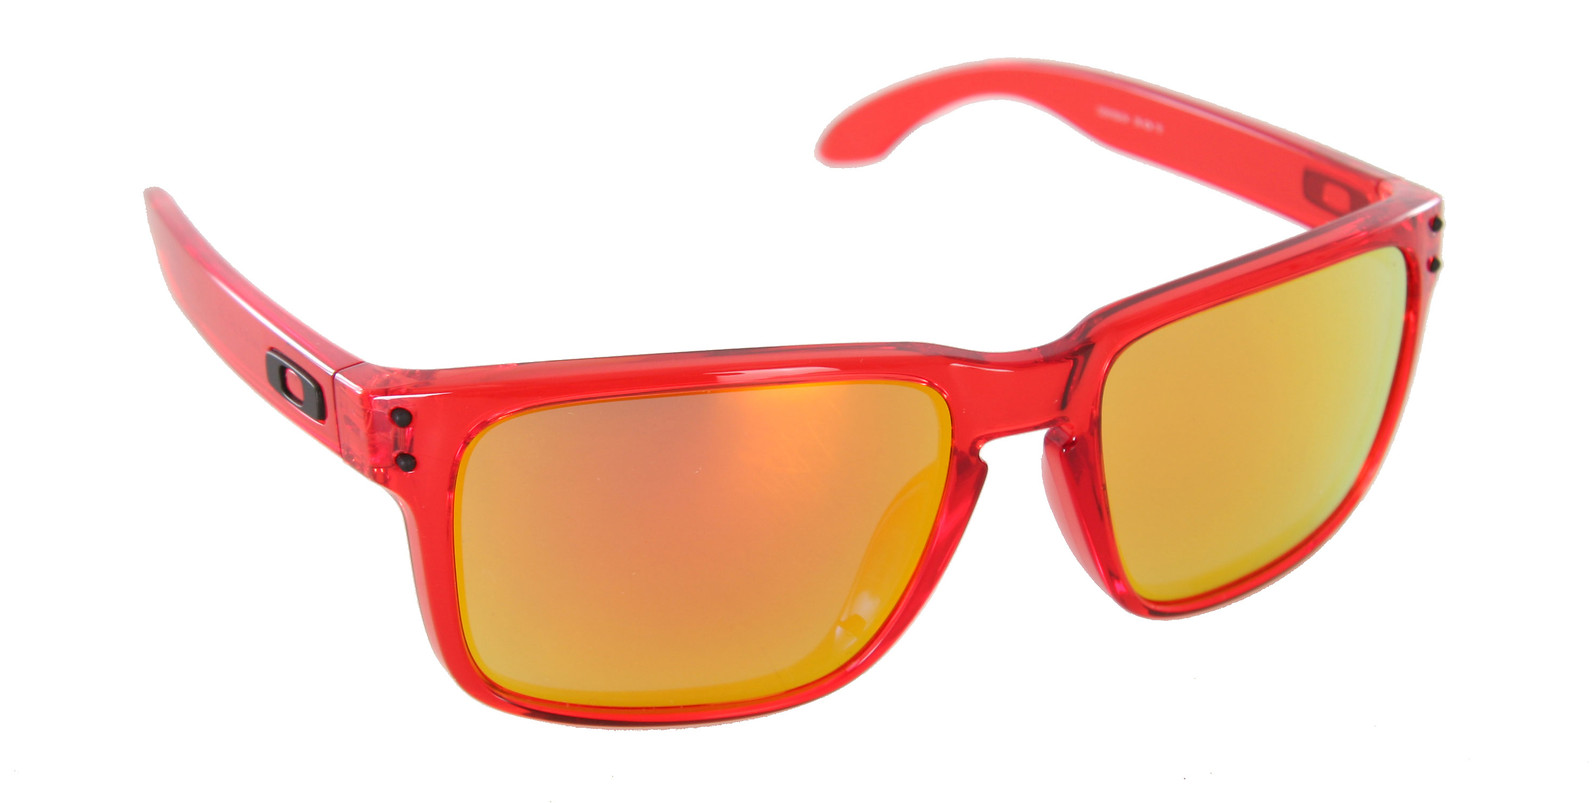 b059642235 Oakley Holbrook Sunglasses Crystal Red Ruby Iridium Lens - Reviews ...